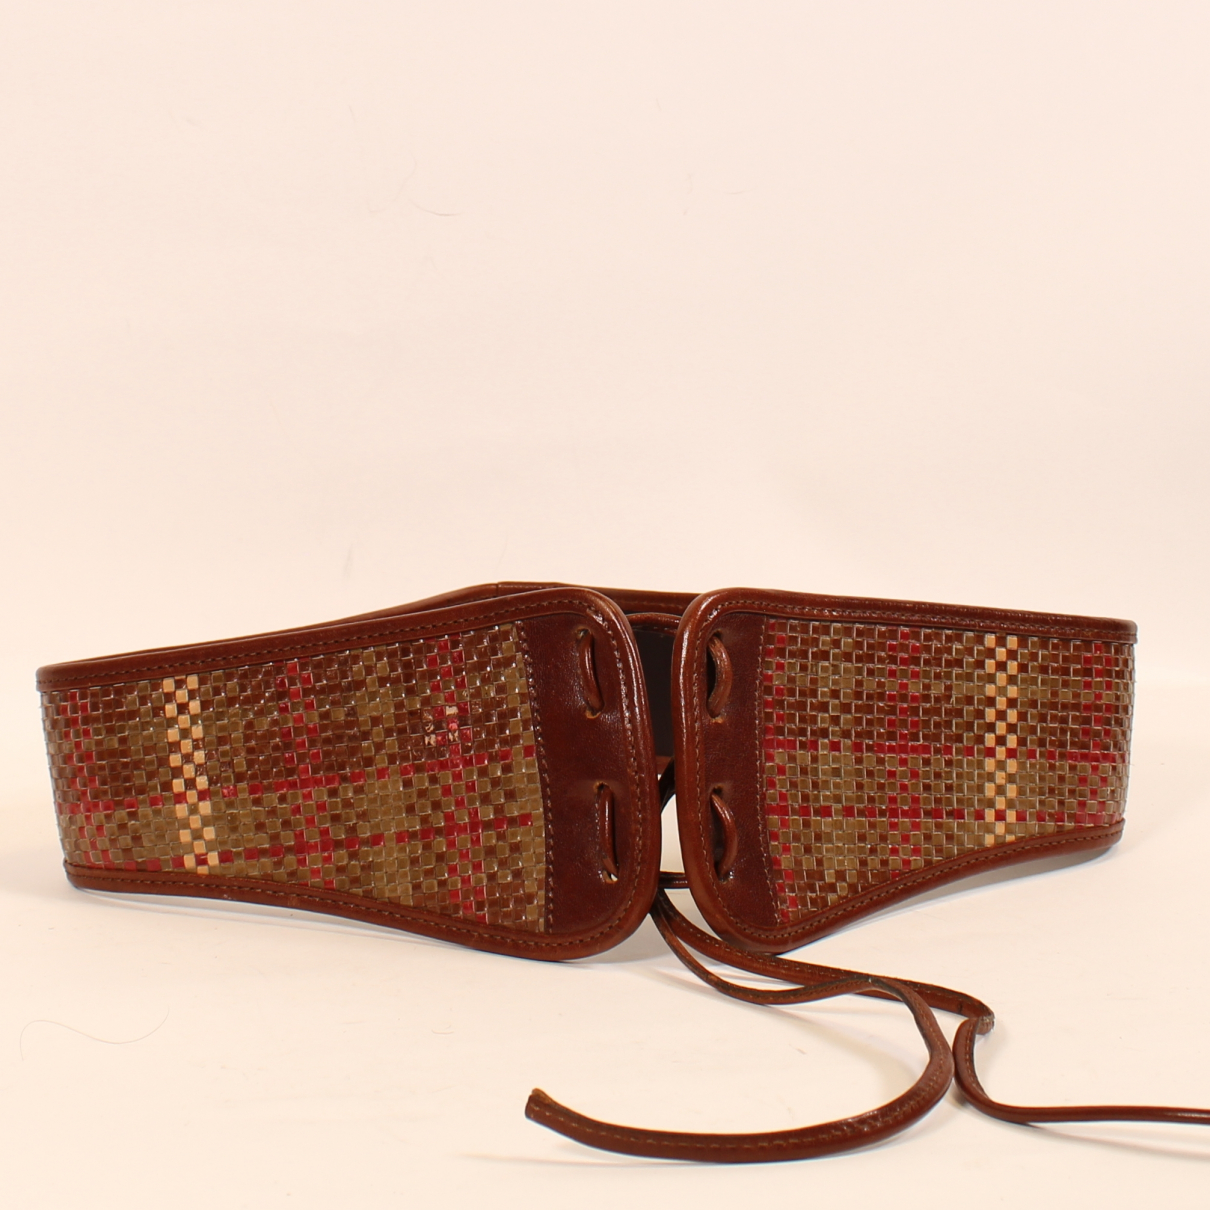 Mulberry N Brown Leather belt for Women 70 cm